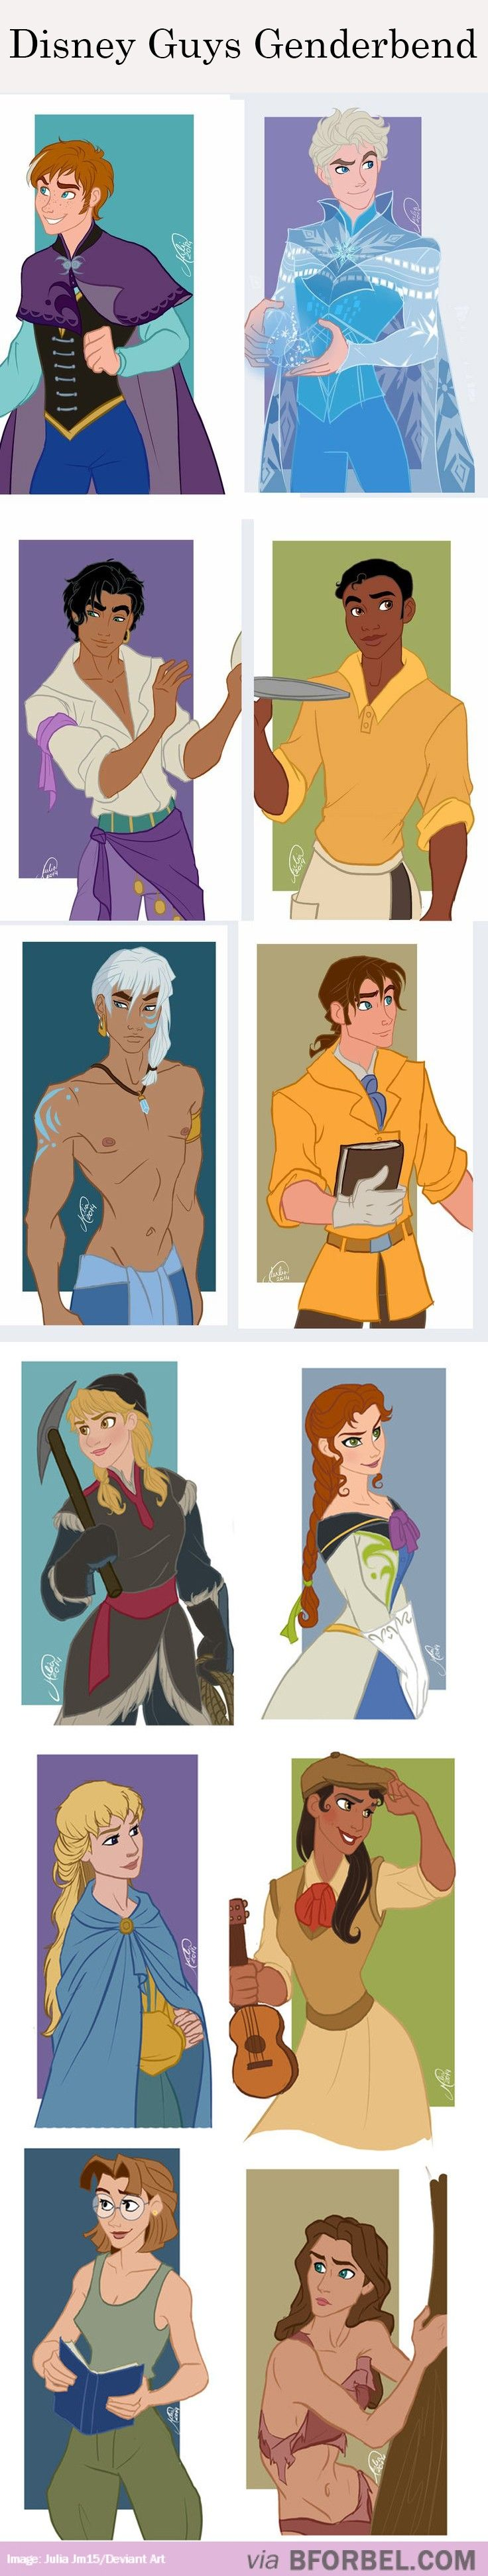 12 Disney Gender Benders. elsa actually looks really good as a guy, but what would his name be?